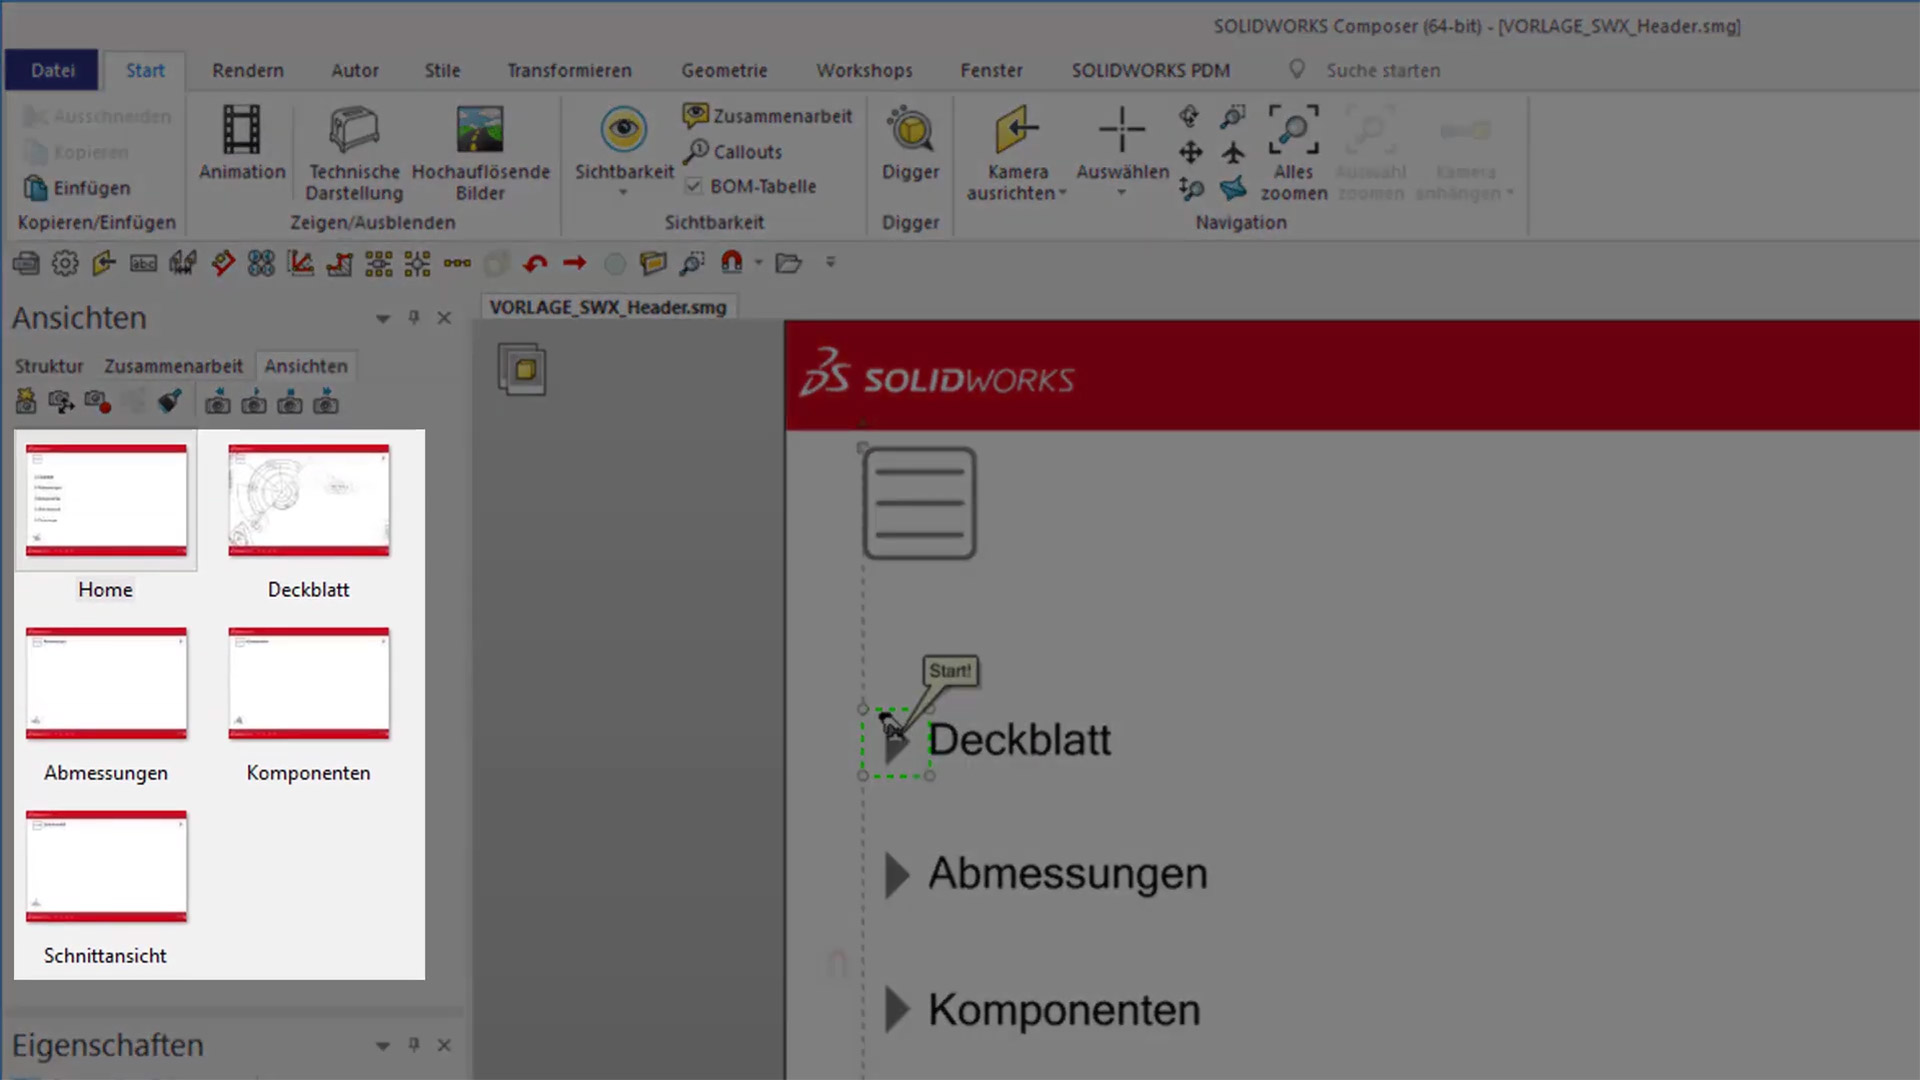 SOLIDWORKS Composer 2019 Video Anleitung